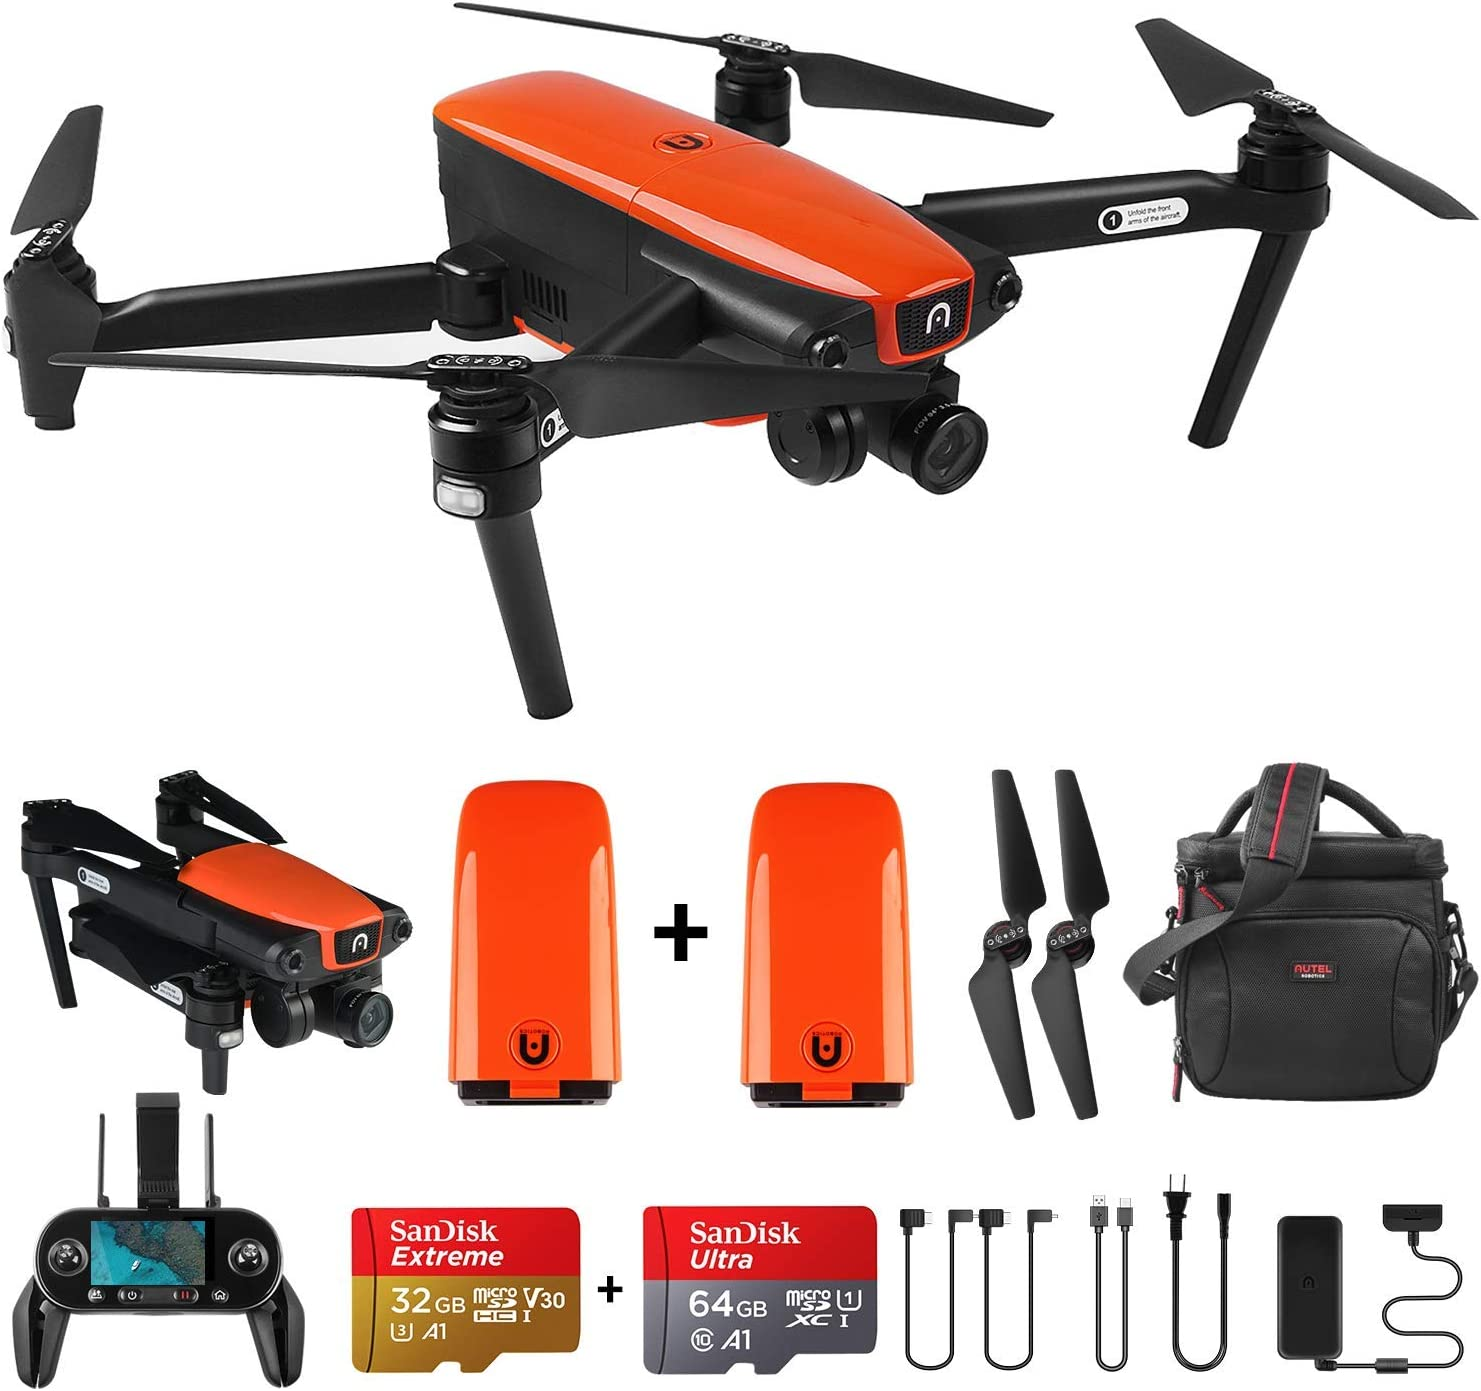 Autel Robotics EVO Foldable Drone with Camera